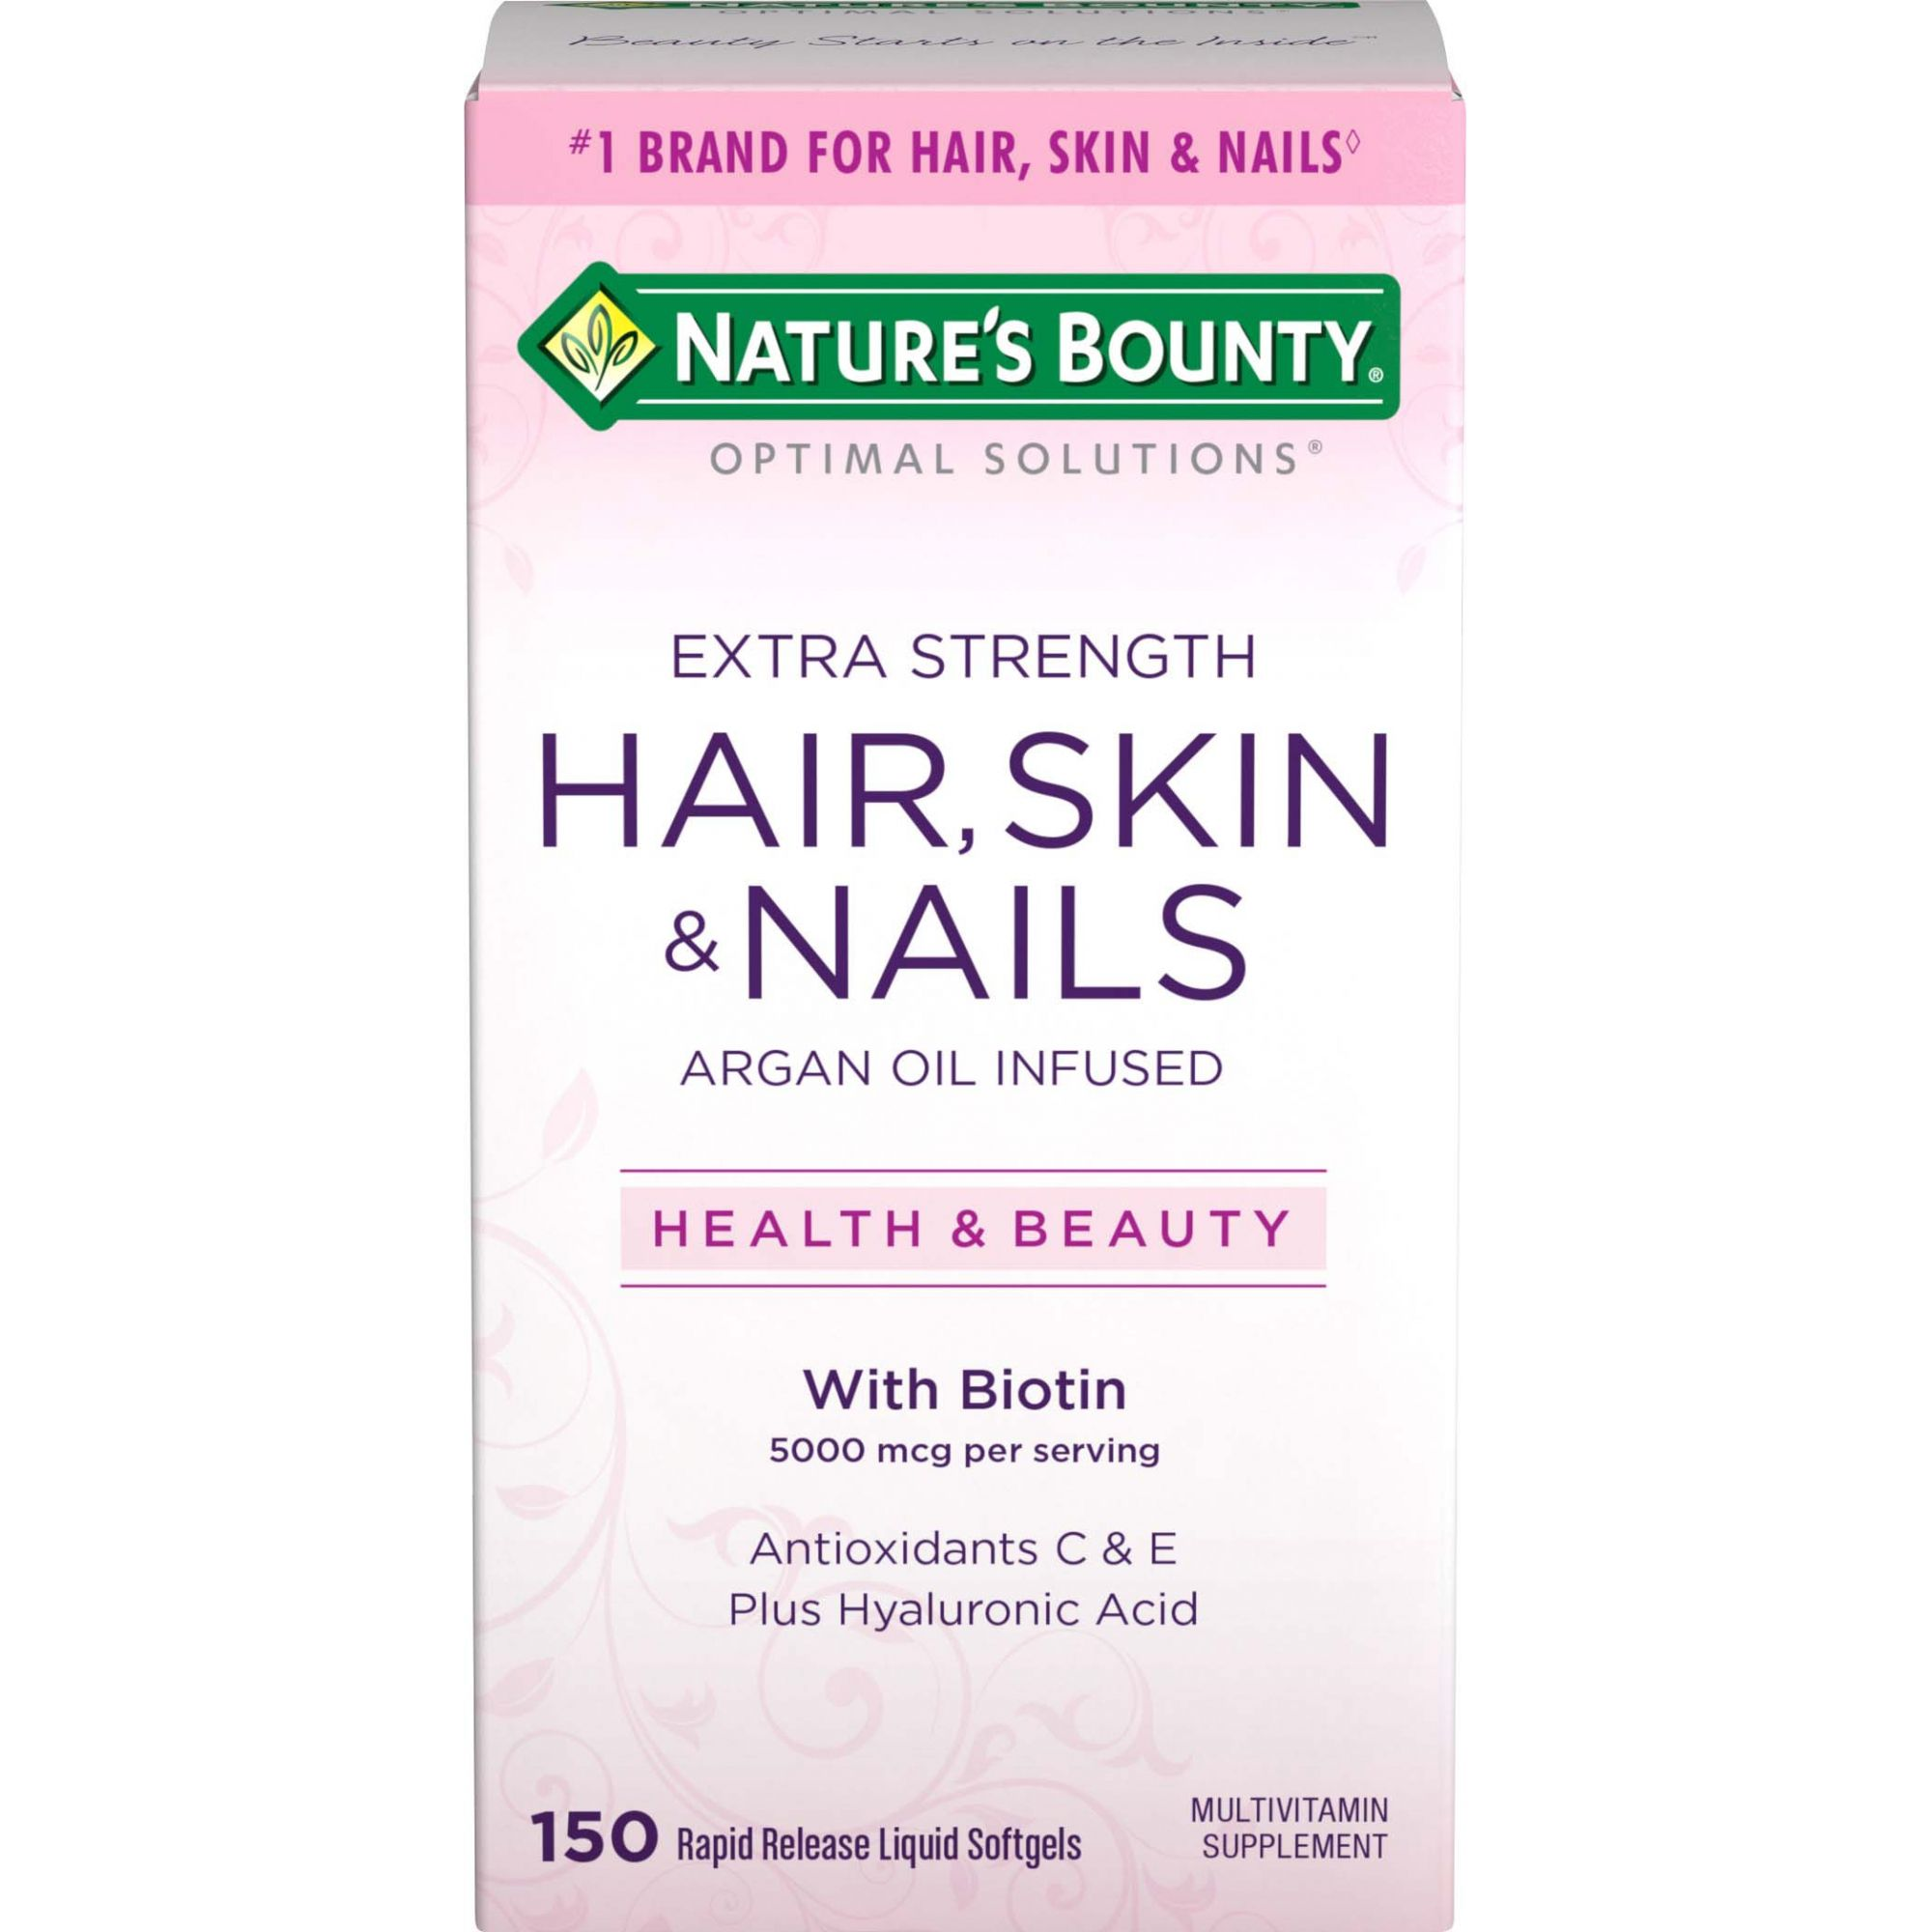 Biotina Natures Bounty 5000mcg - 150 softGel